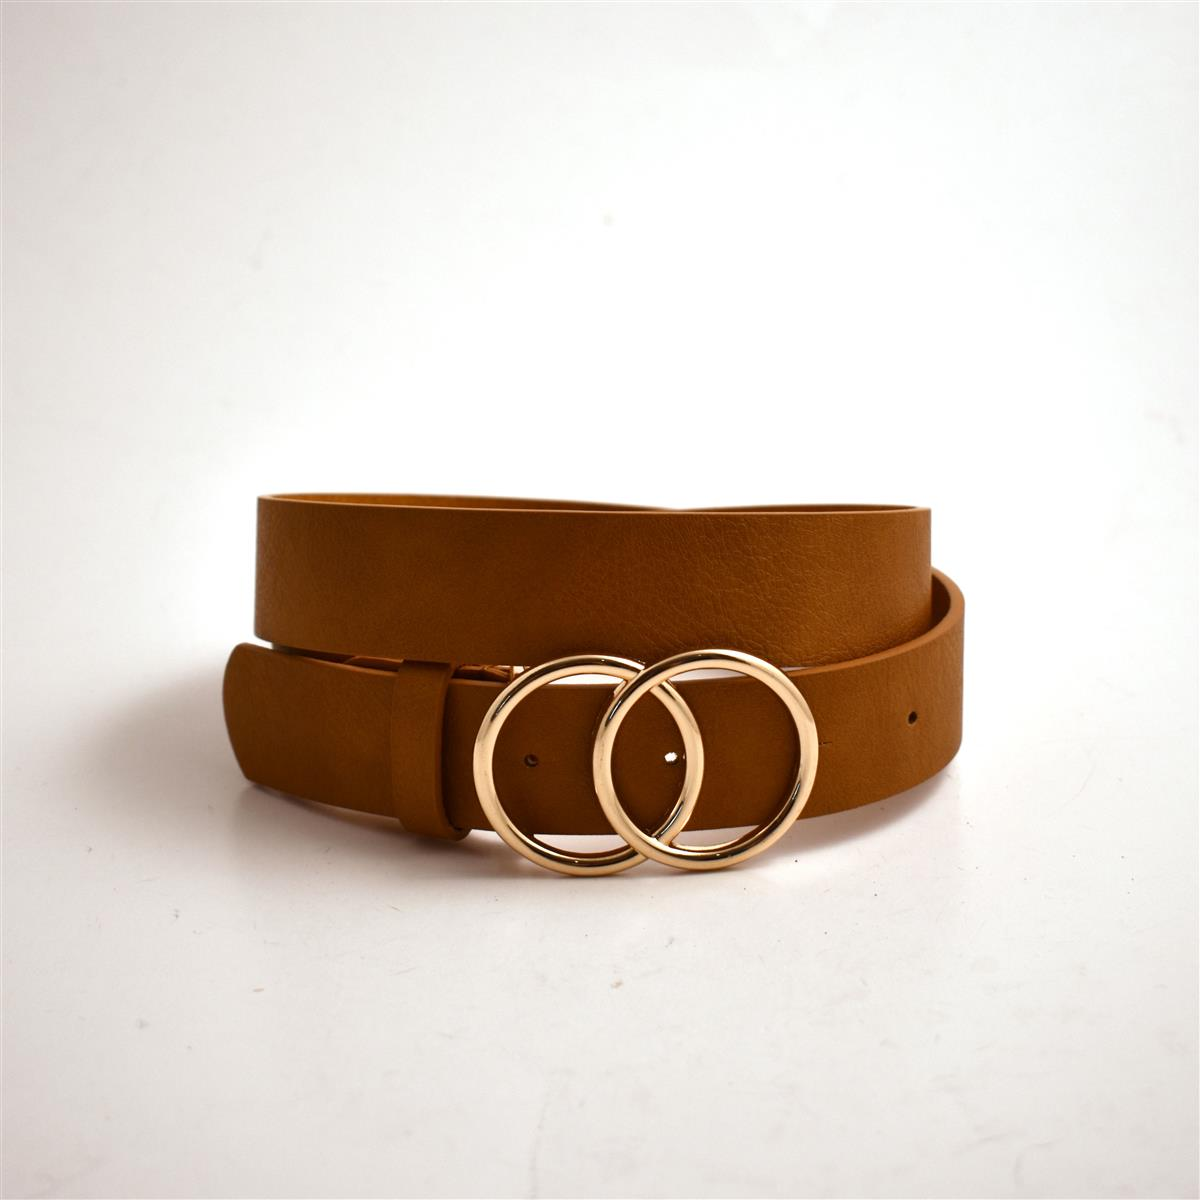 Belt, Double sirkle buckle, cognac